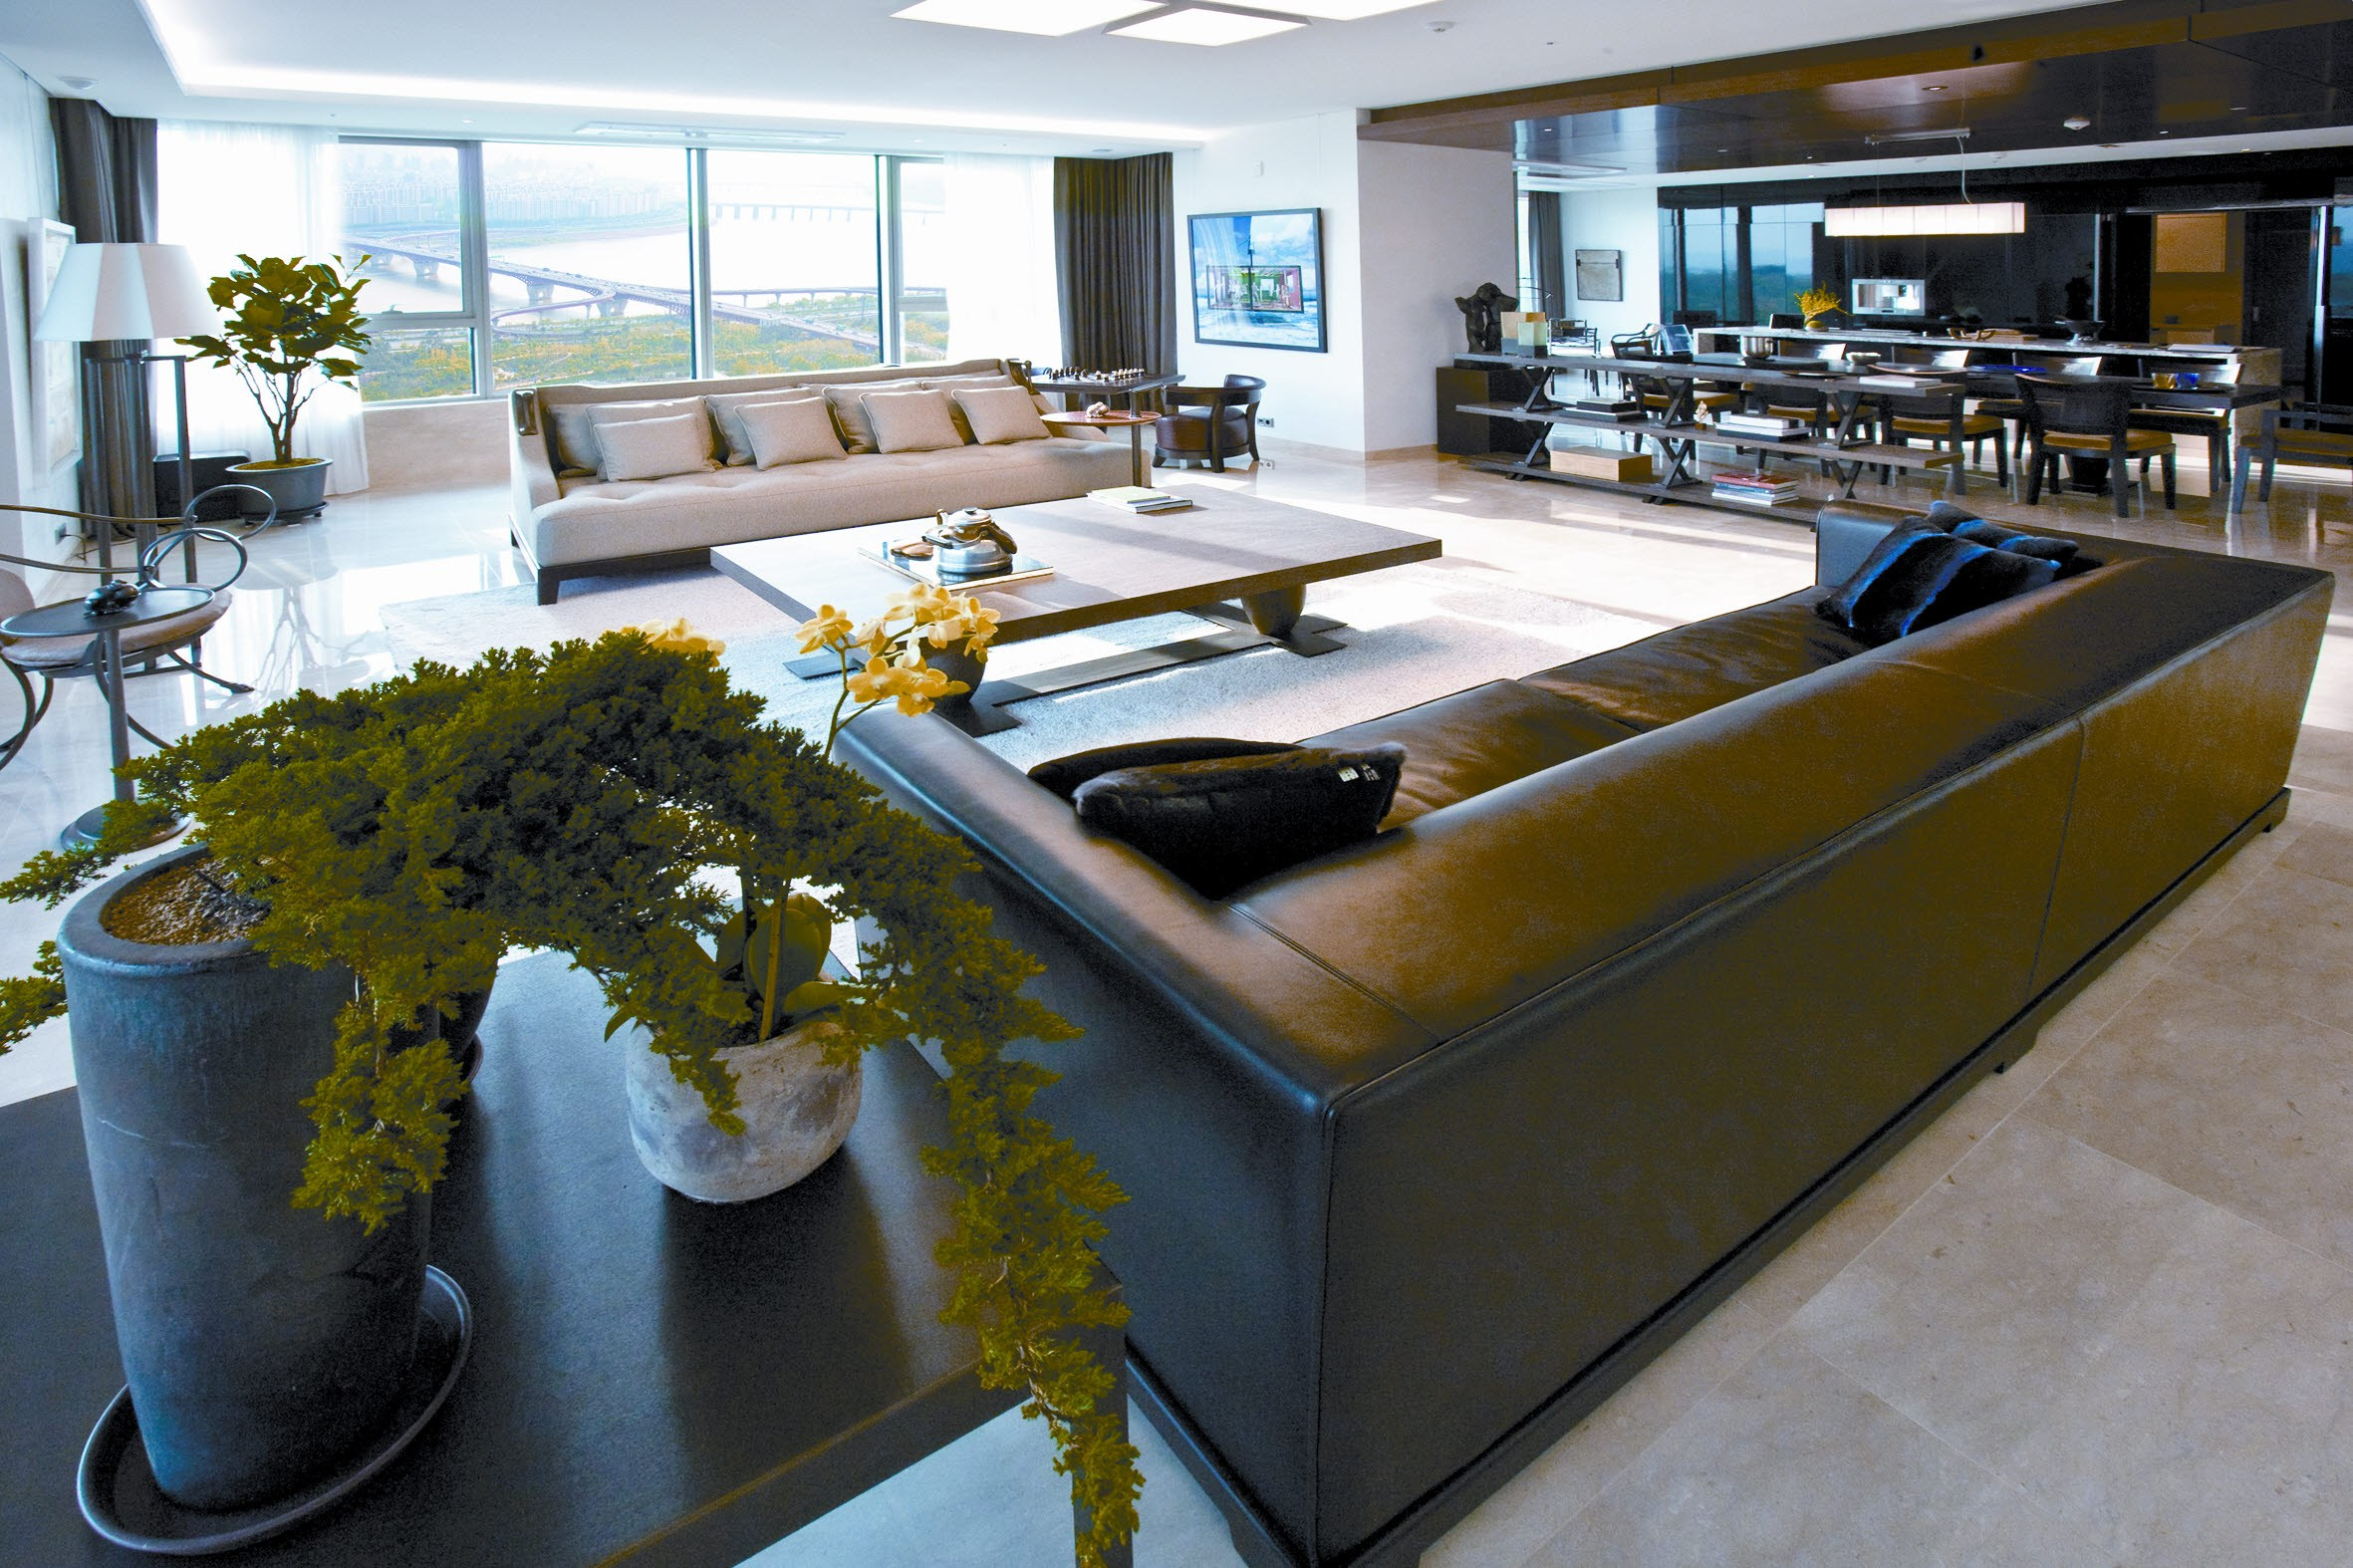 Galleria Foret Is Truly A Luxurious Apartment It S No Wonder Why Top Celebrities Choose To Live Here